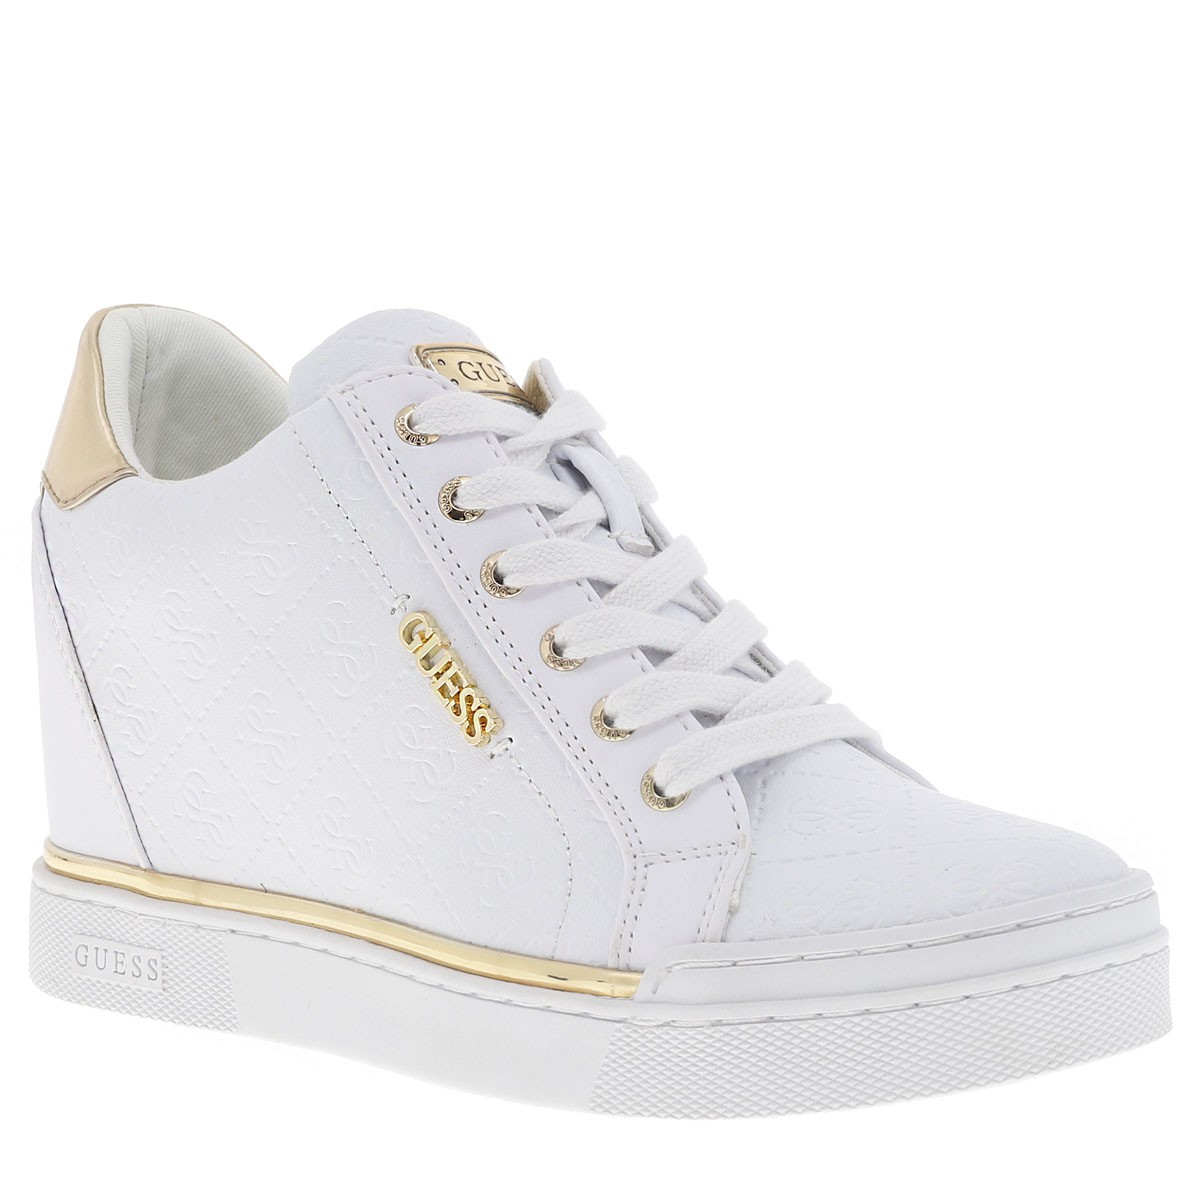 Guess Flowrus Guess Femme Flowrus Femme Chaussures Blanc bgmIYyvf76